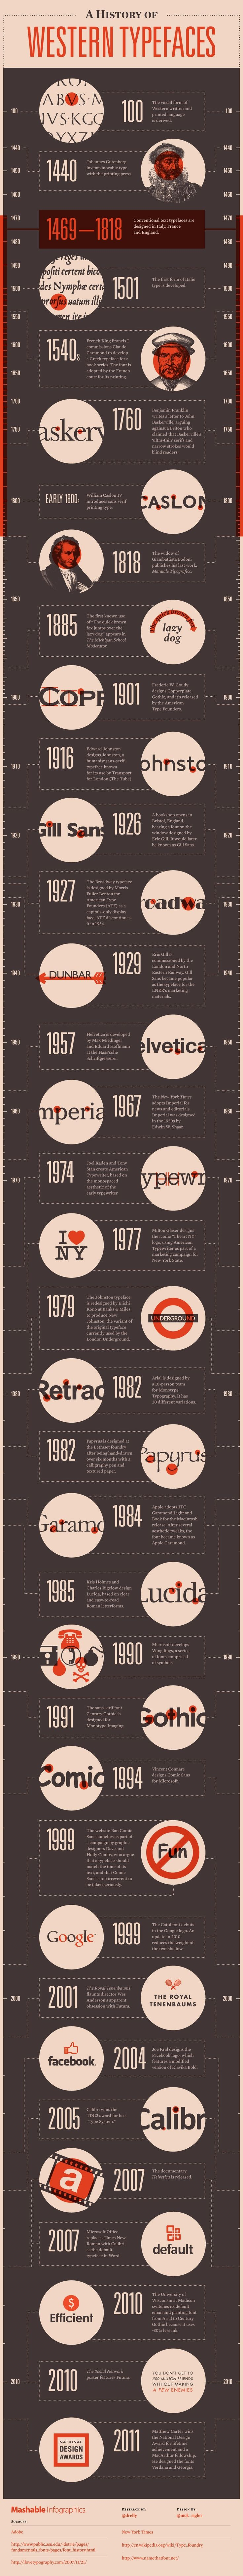 The history of typography, and typefaces, and all things tappy-tappy. Gill Sans > everything.  #infographic #infographicdesign #graphicdesign